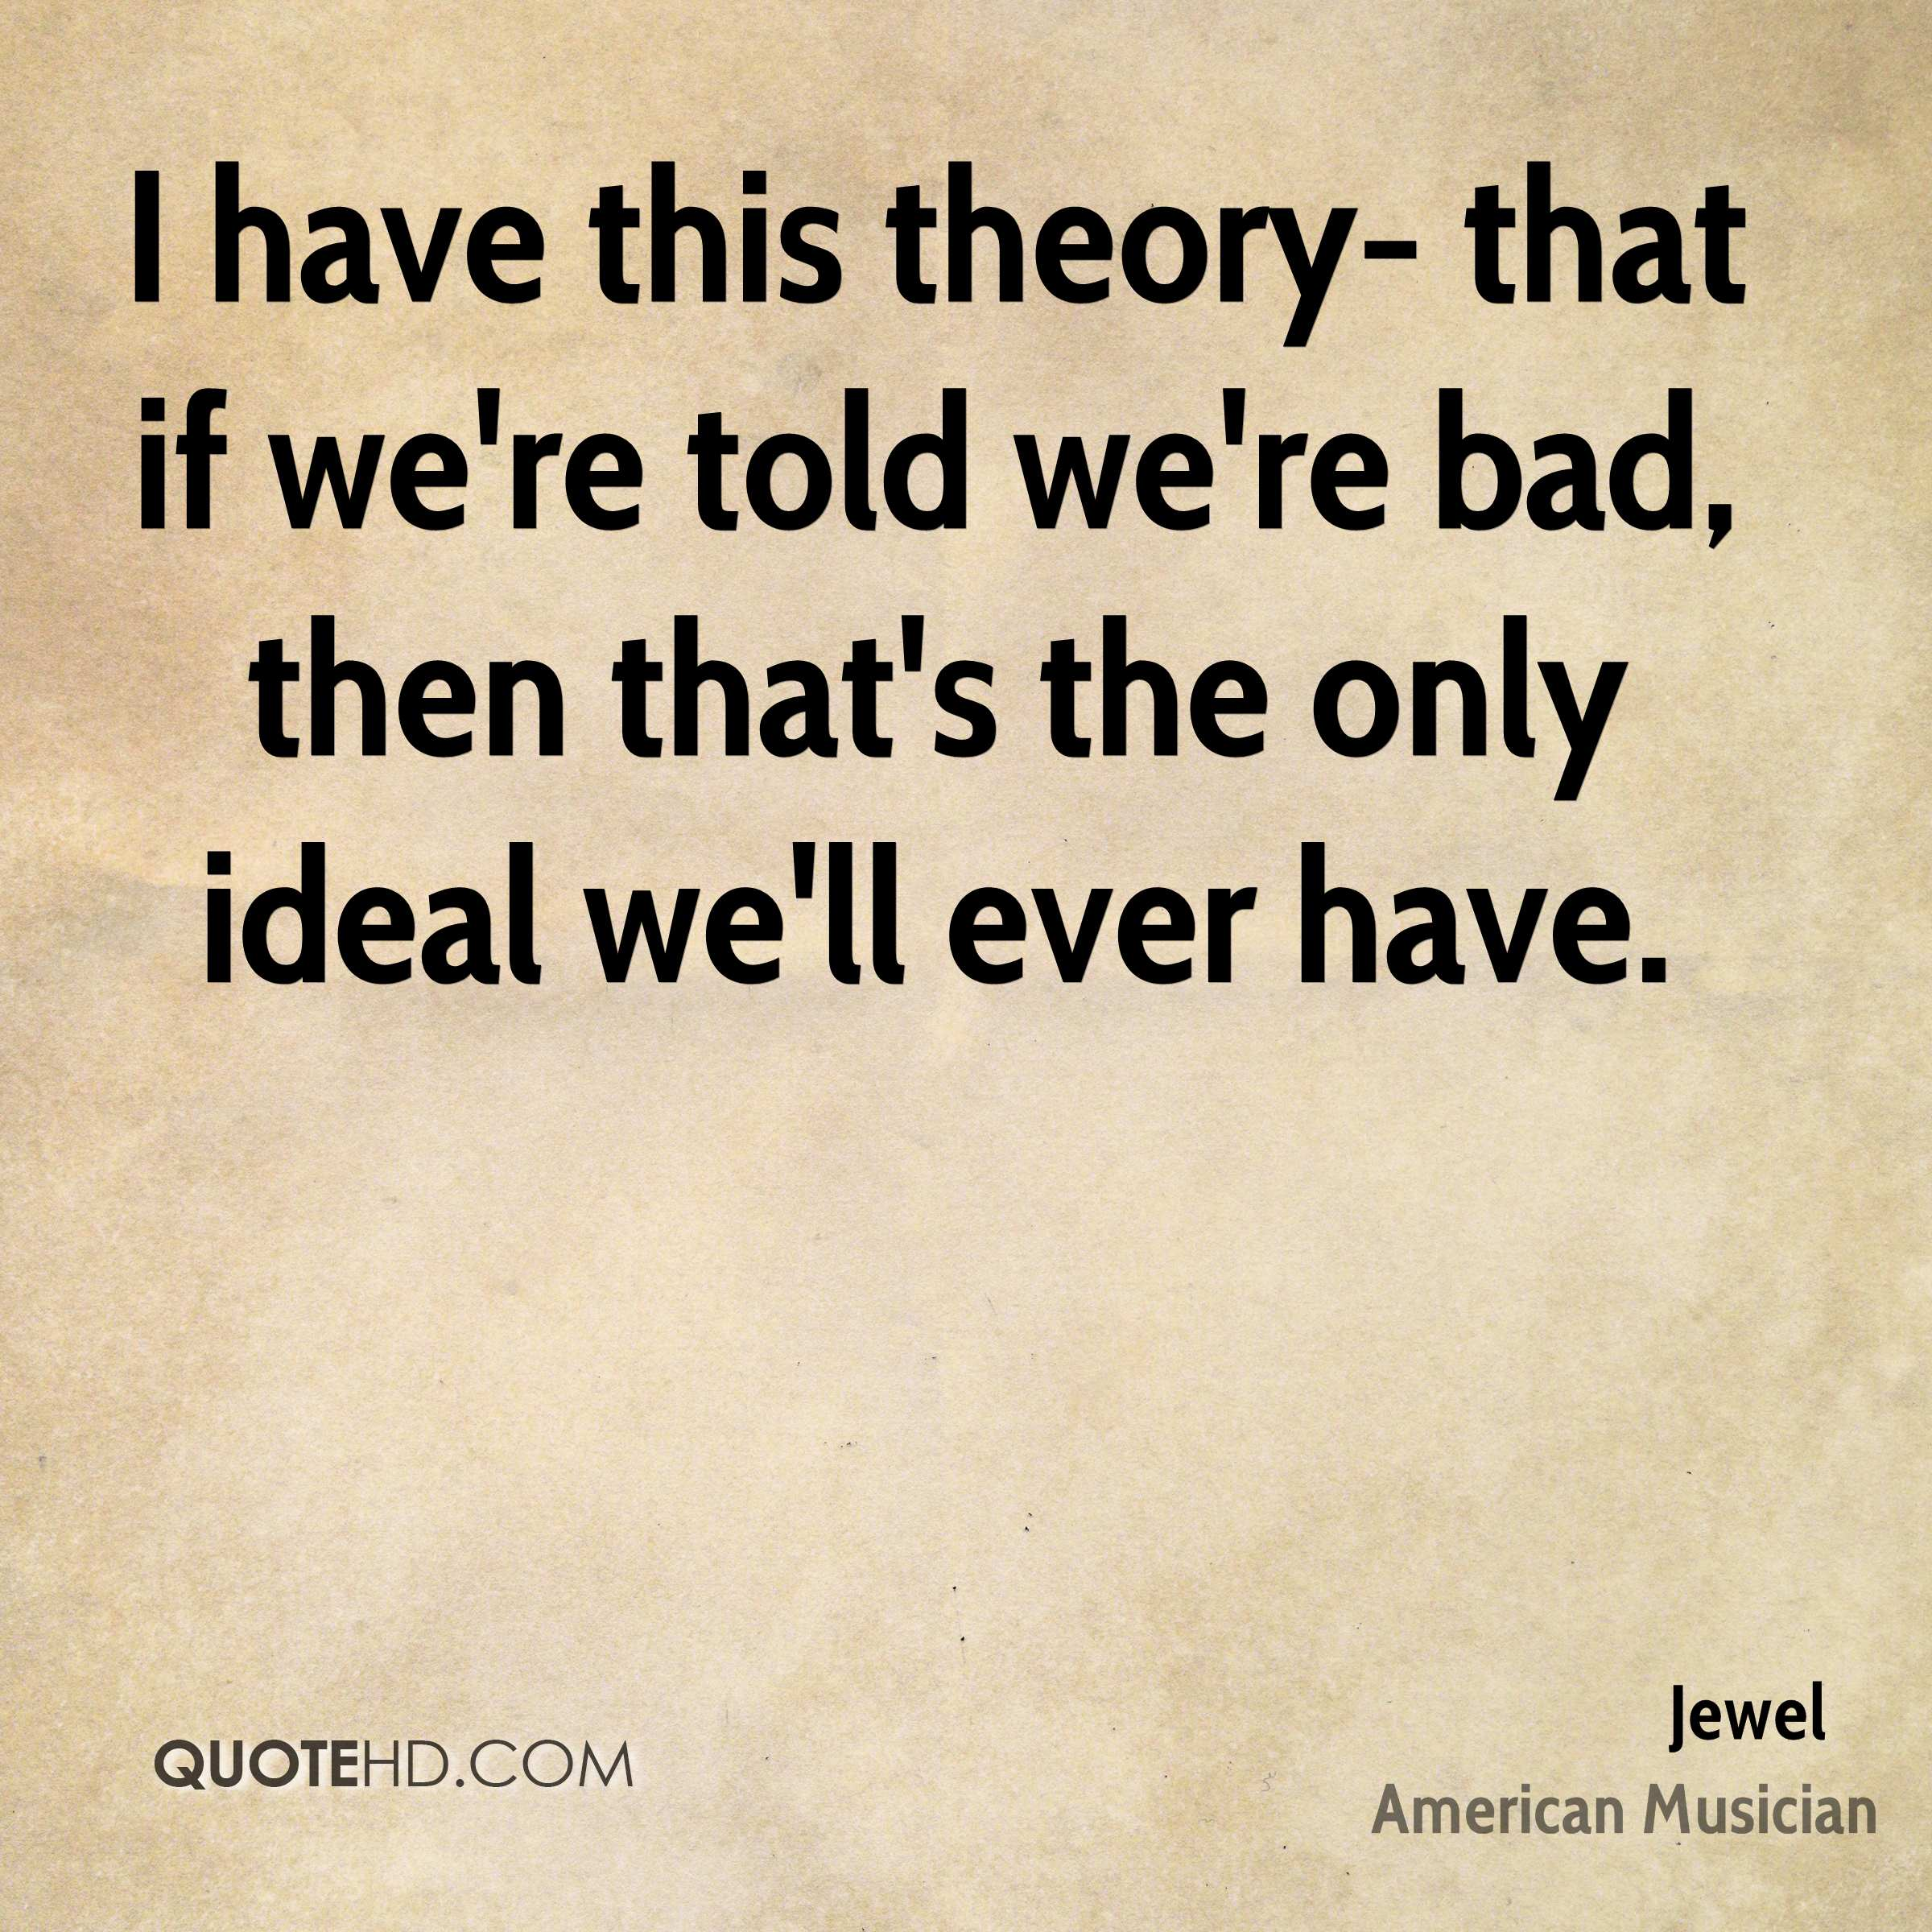 I have this theory- that if we're told we're bad, then that's the only ideal we'll ever have.